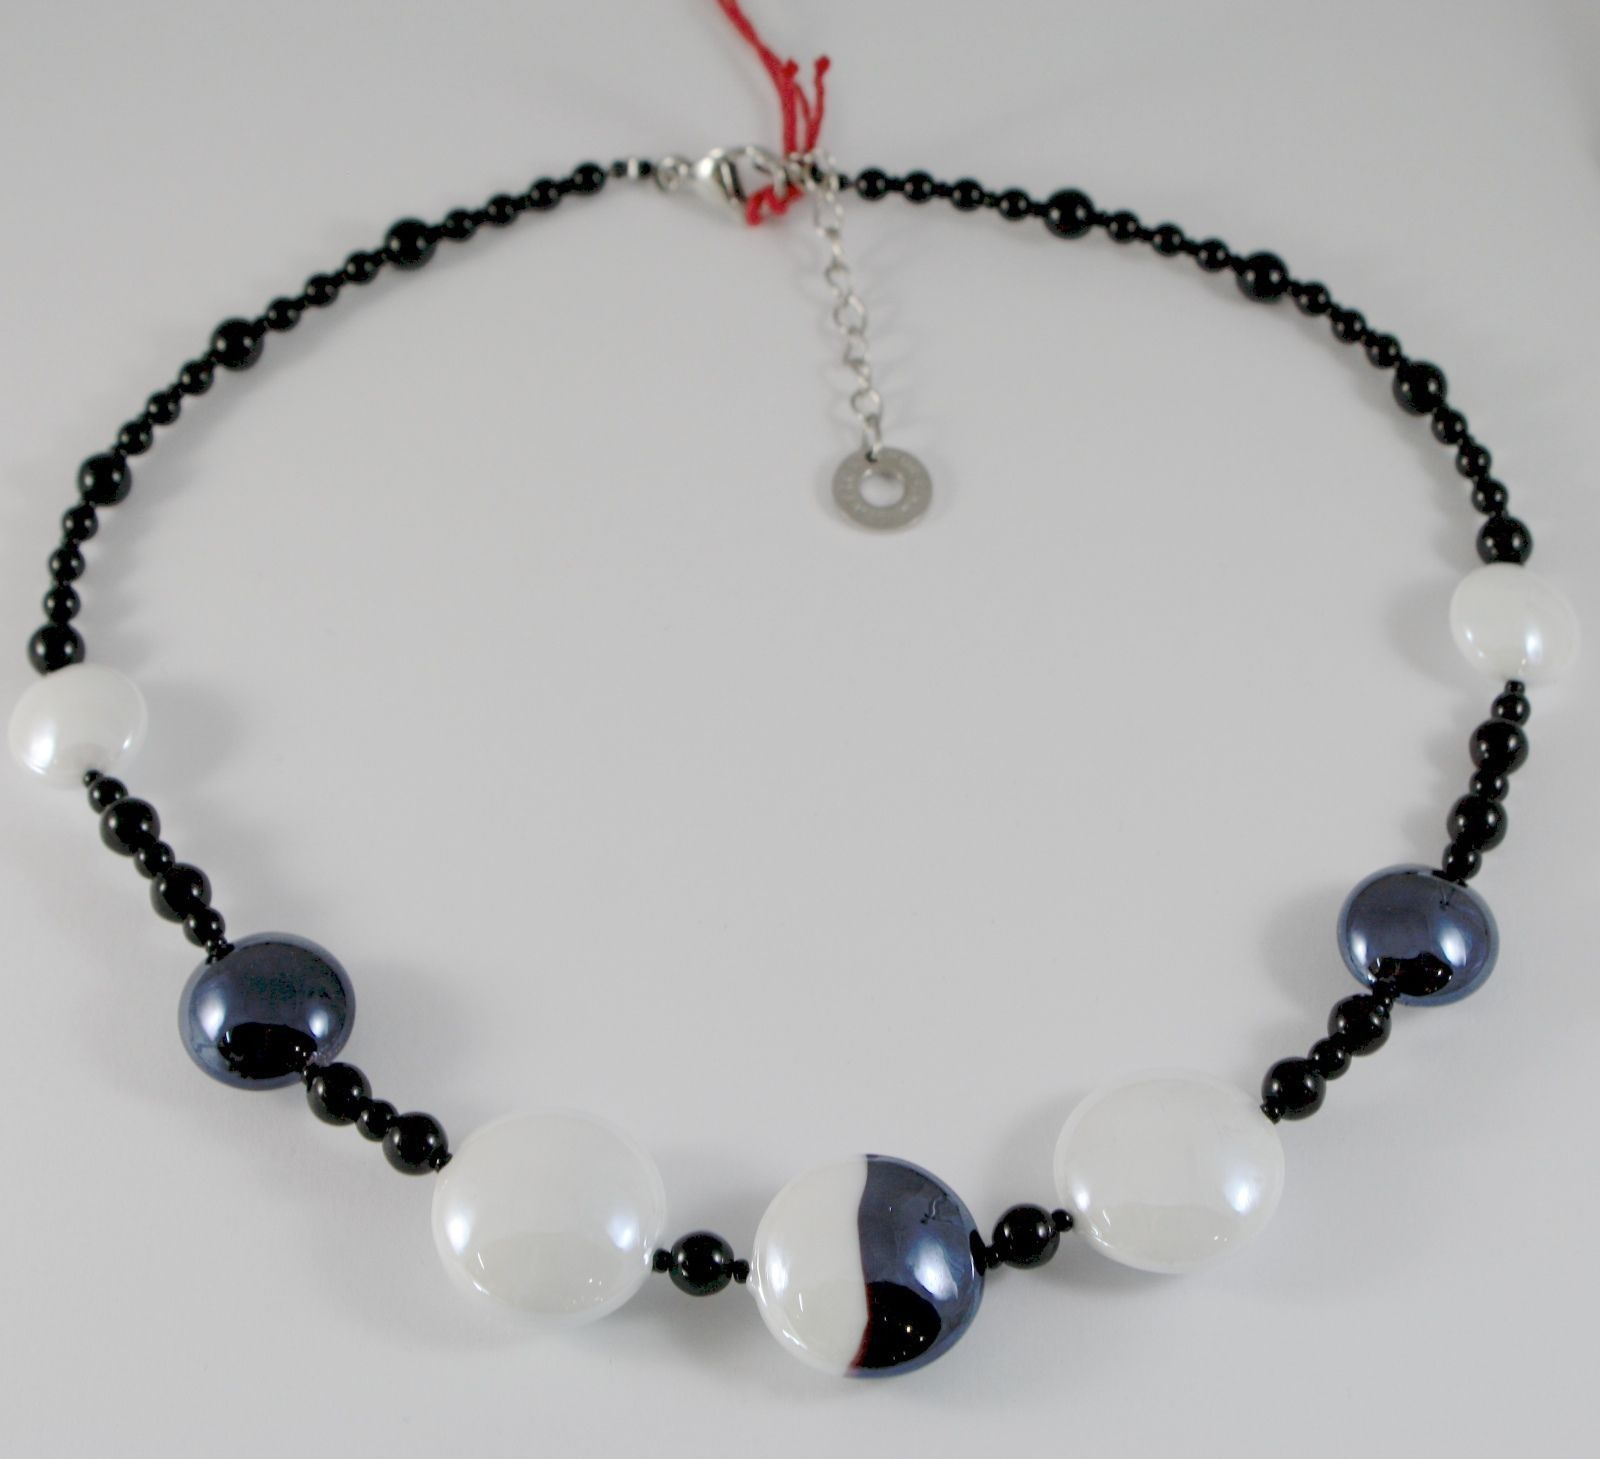 NECKLACE ANTICA MURRINA VENEZIA WITH MURANO GLASS BLACK AND WHITE COA40A15